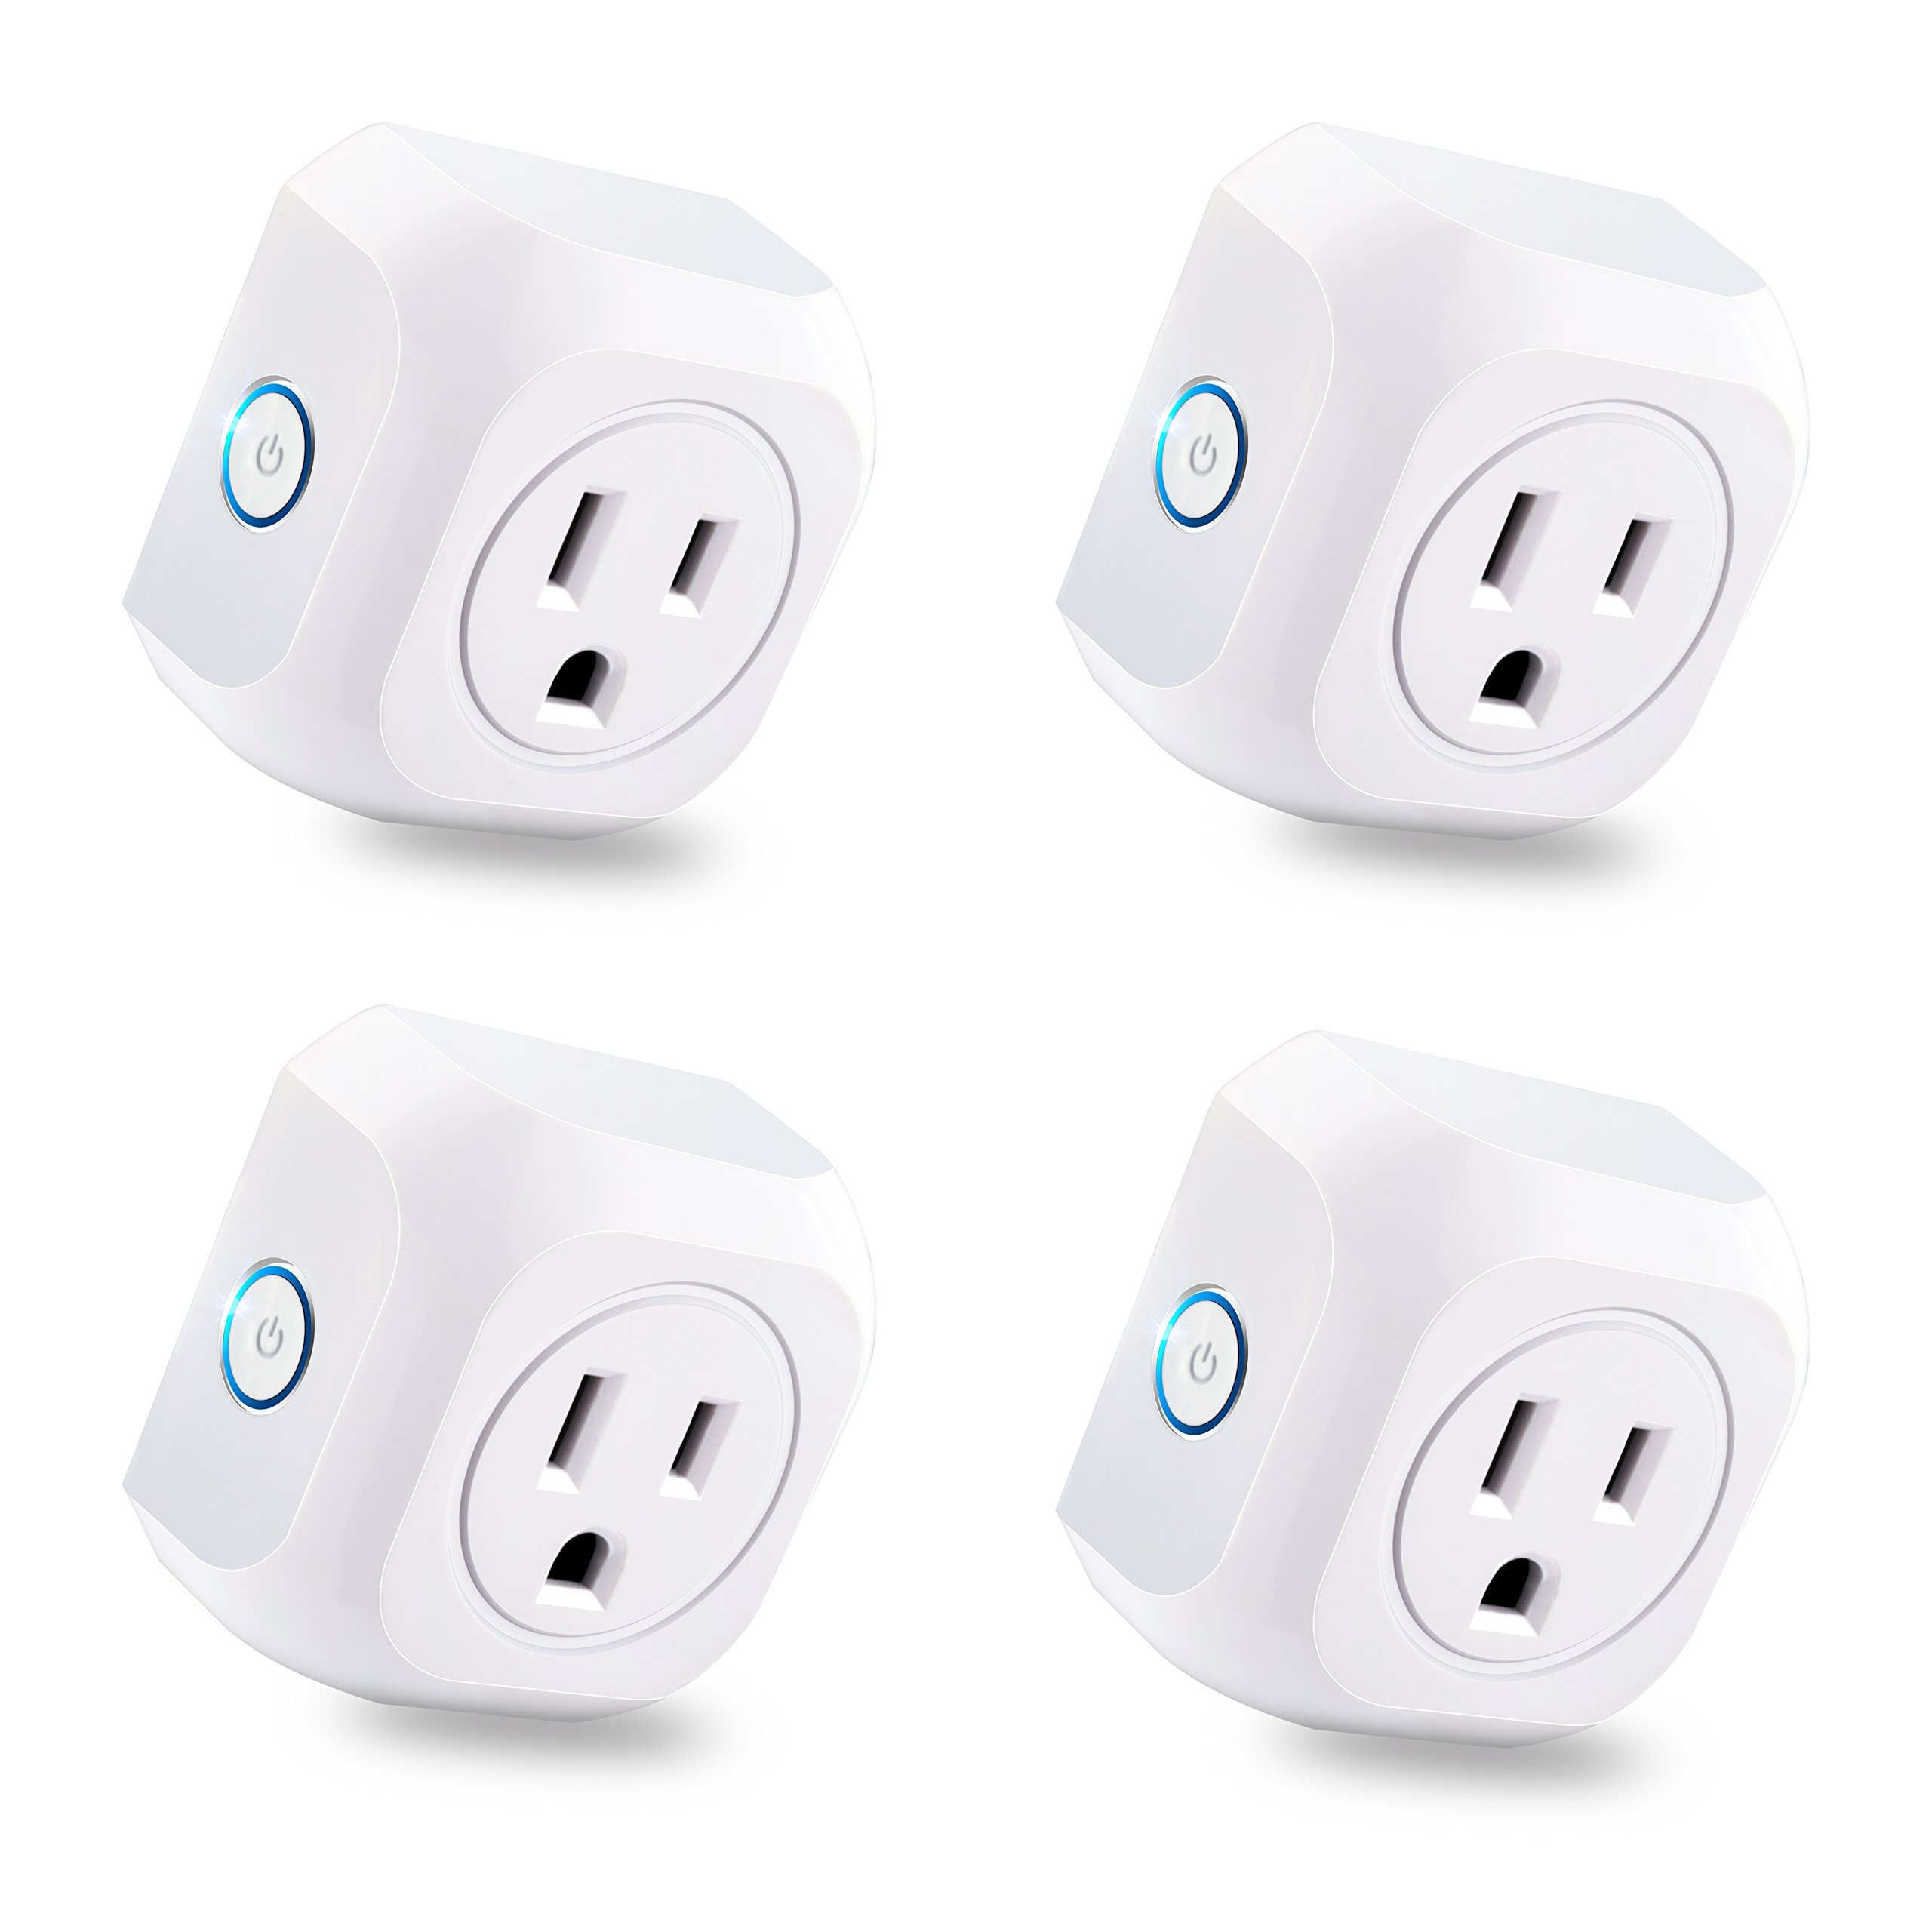 KOOTION 4 Pack Wifi Smart Plug Mini Outlet with Energy Monitoring, Compatible with Alexa Echo and Google Assistant, No Hub Required, ETL Listed, White